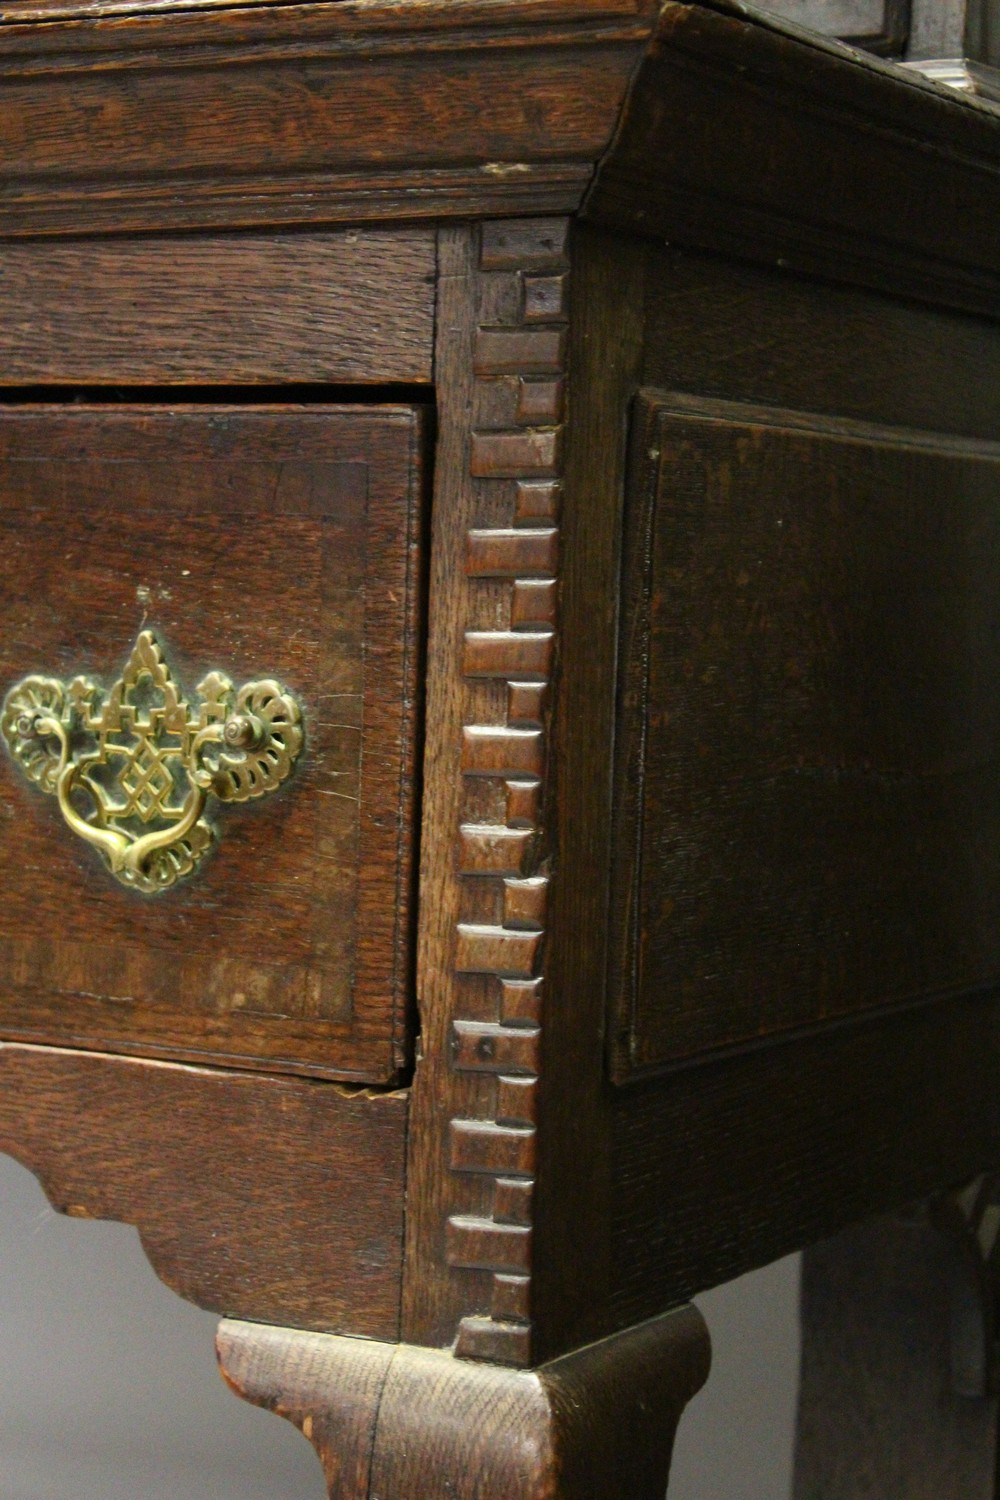 Lot 1009 - AN 18TH CENTURY OAK DRESSER, the upper section with three shelves and two cupboard doors, fitted